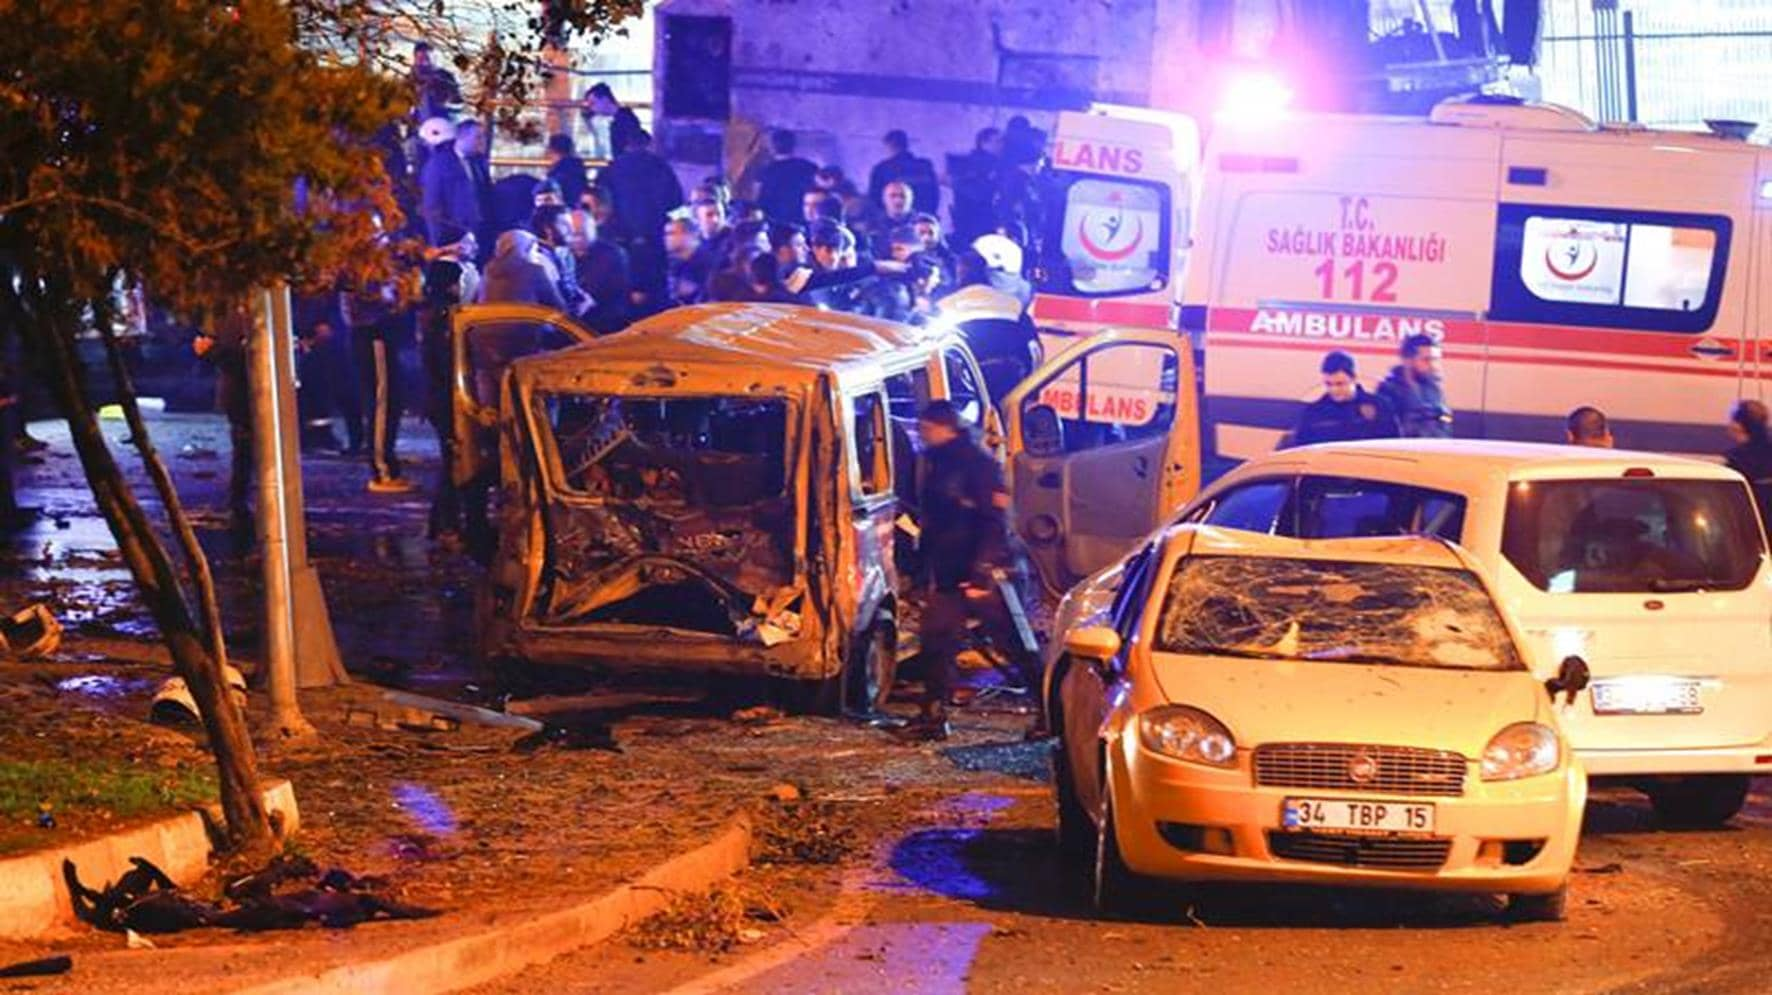 Police Arrive At The Site Of An Explosion In Central Istanbul, Turkey, December 10, 2016. REUTERS/Murad Sezer